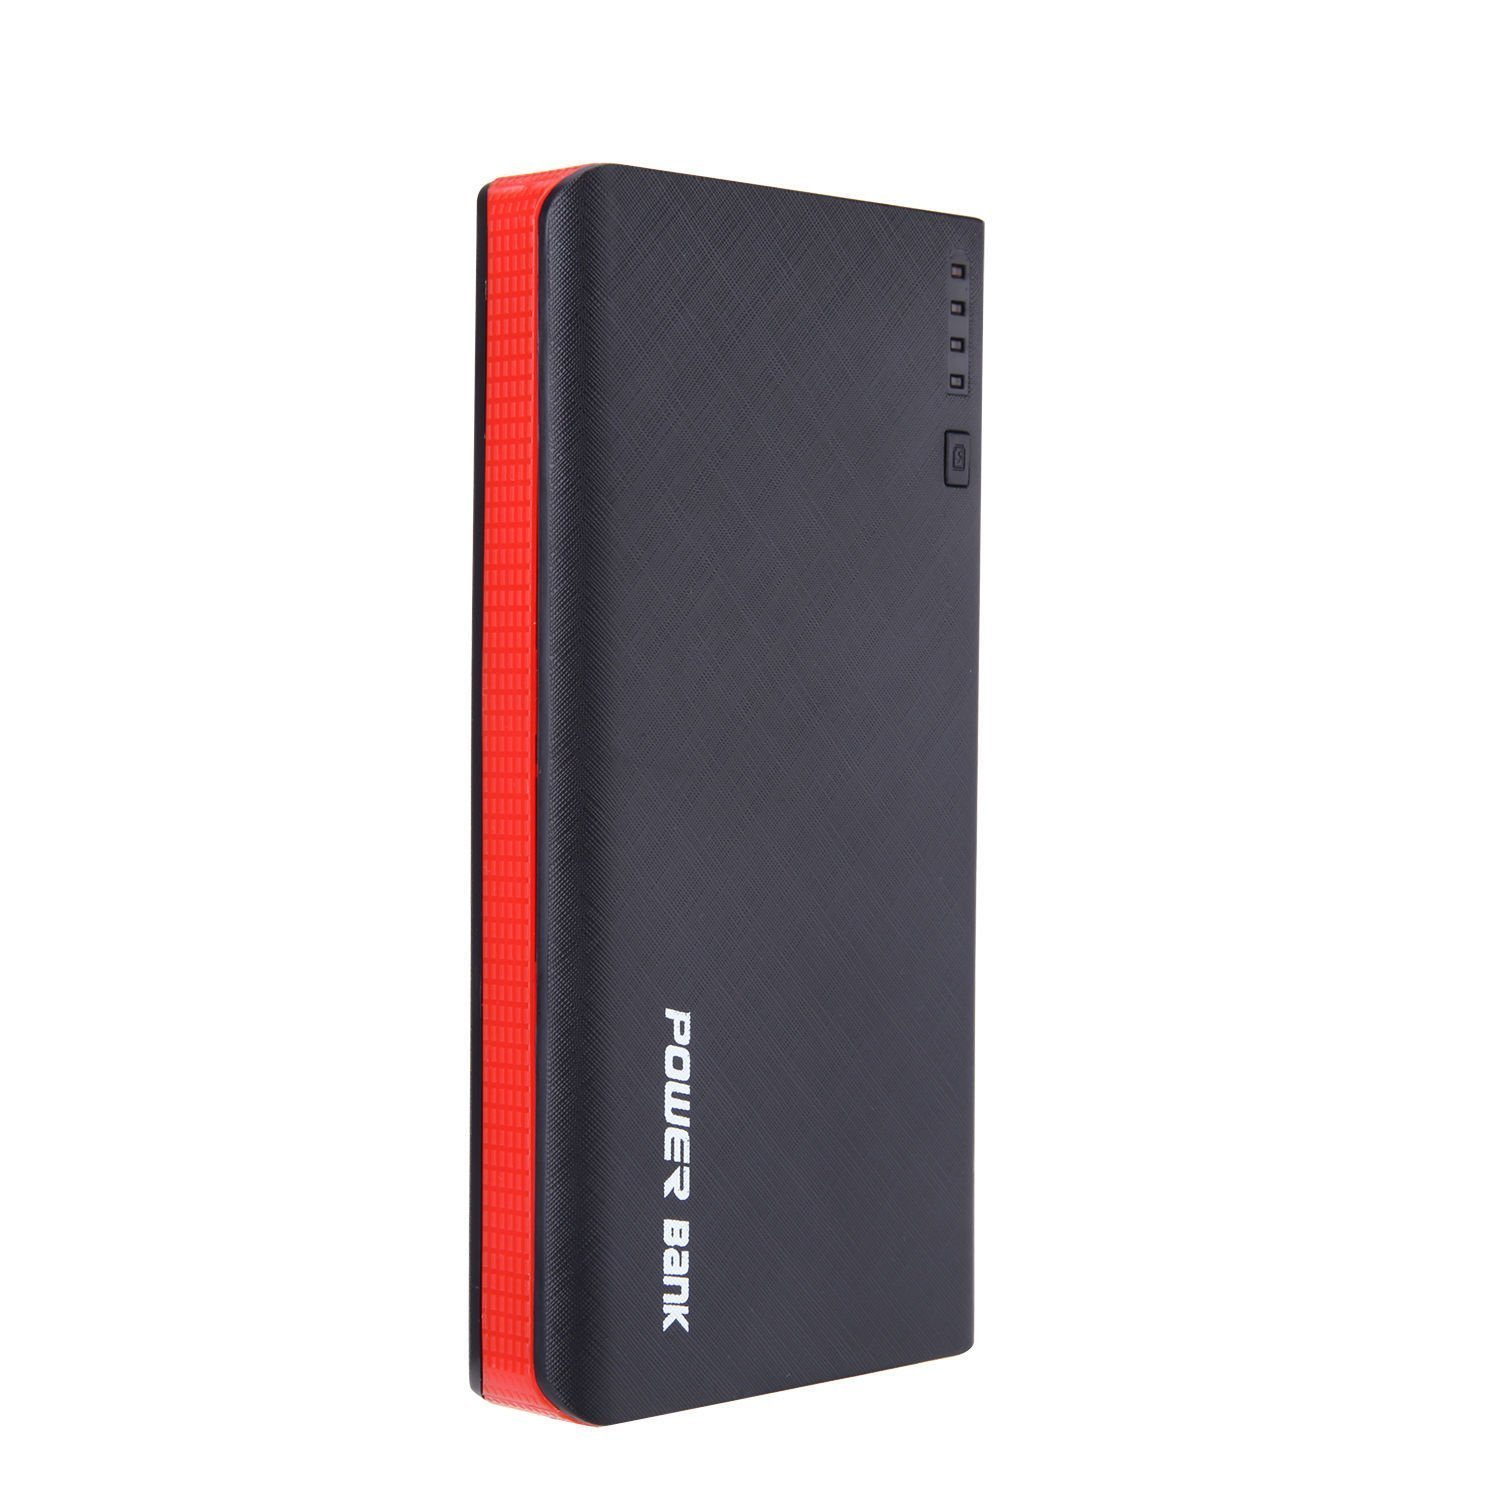 Amazon.com: 4 USB 500000 mAh Banco de la energía LED ...